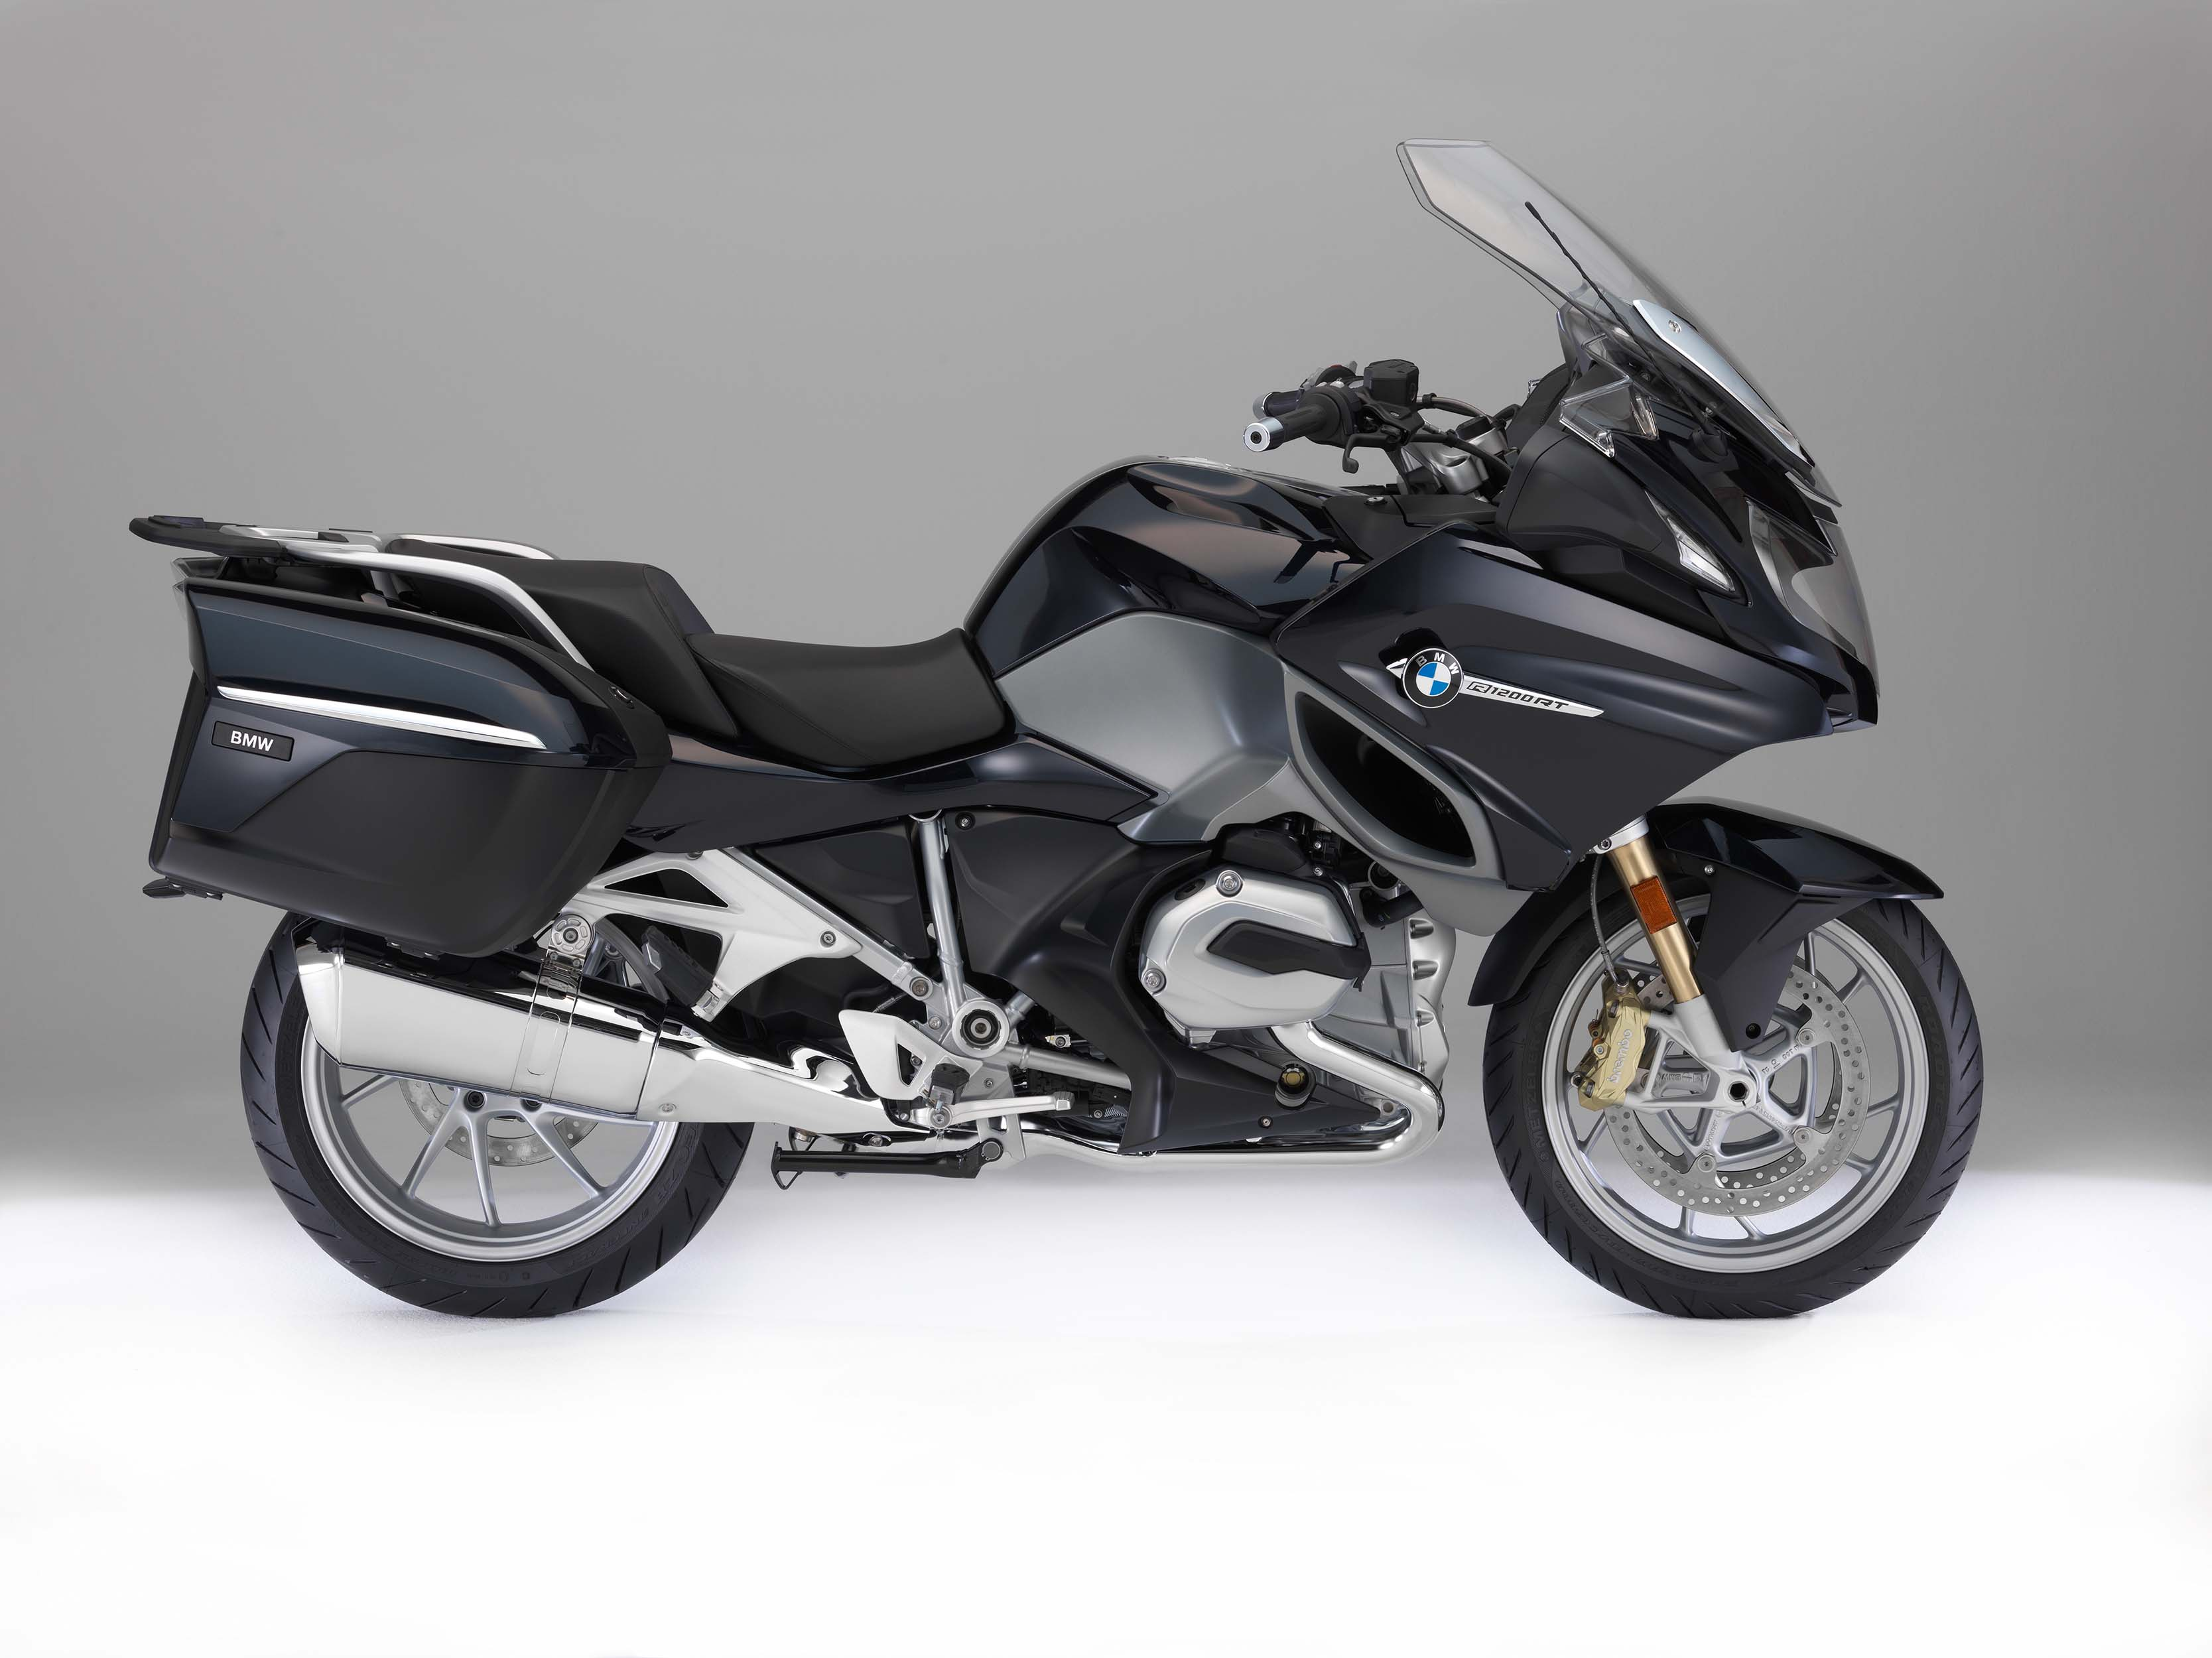 2018 bmw motorcycles receive new colors and option updates. Black Bedroom Furniture Sets. Home Design Ideas